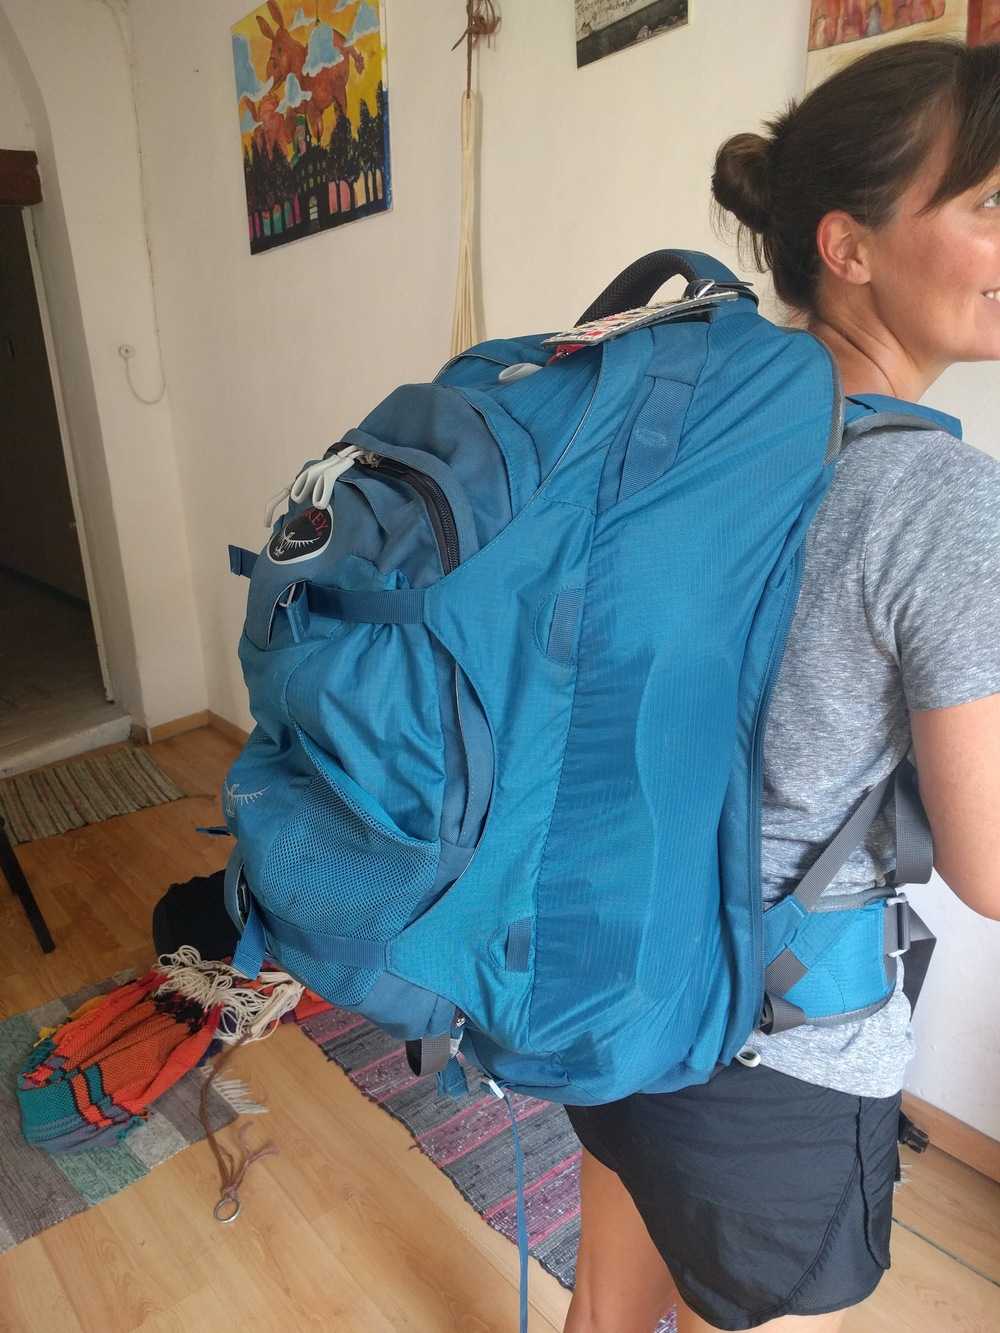 You can see here that a fully packed and attached daypack extends out from Jess' back a decent distance. There's a reason that most hiking backpacks have a tower shape, preferring to go up instead of out. By piling the weight up you make it easier to put the weight on the waist belt and reduce strain on the lower back.